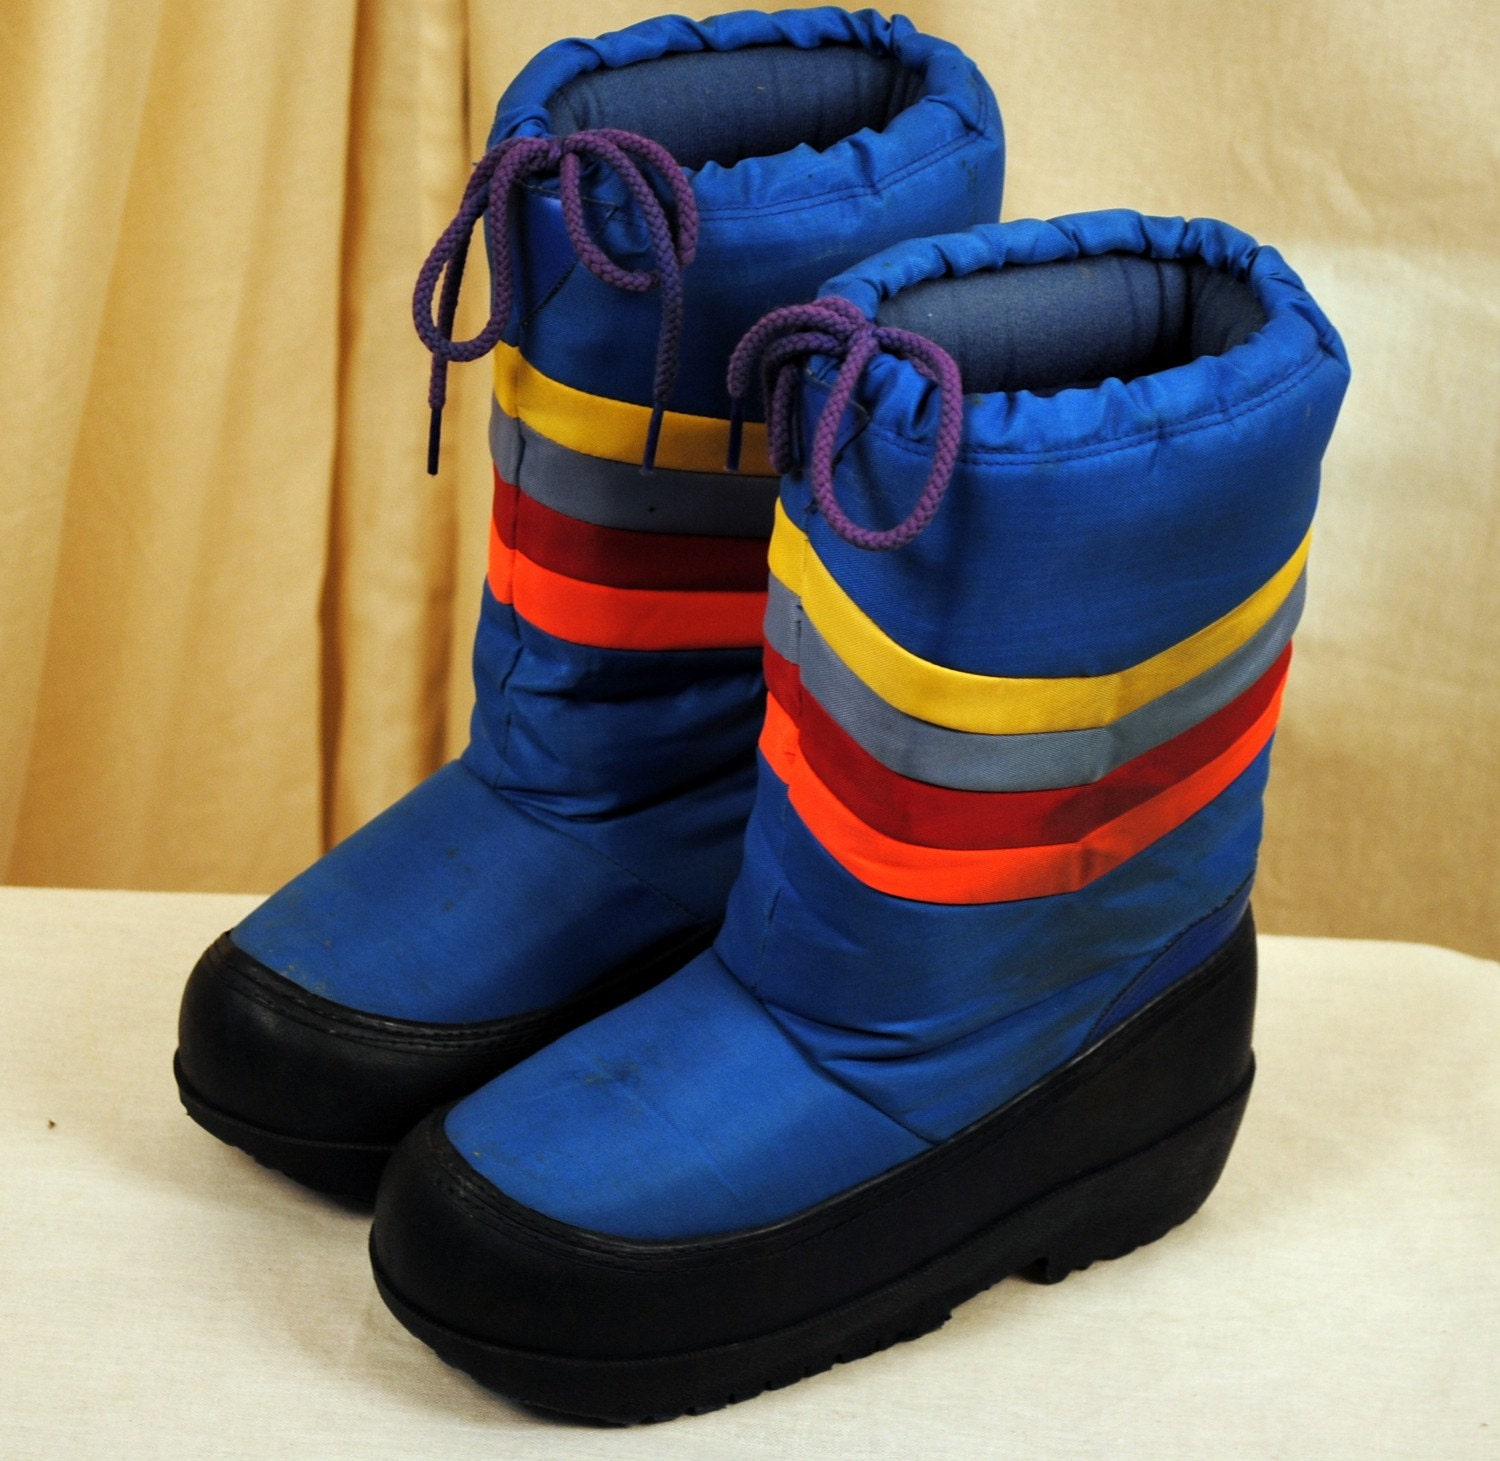 Vintage 80s Rainbow Moon Boots Size 7 8 By RogueRetro On Etsy